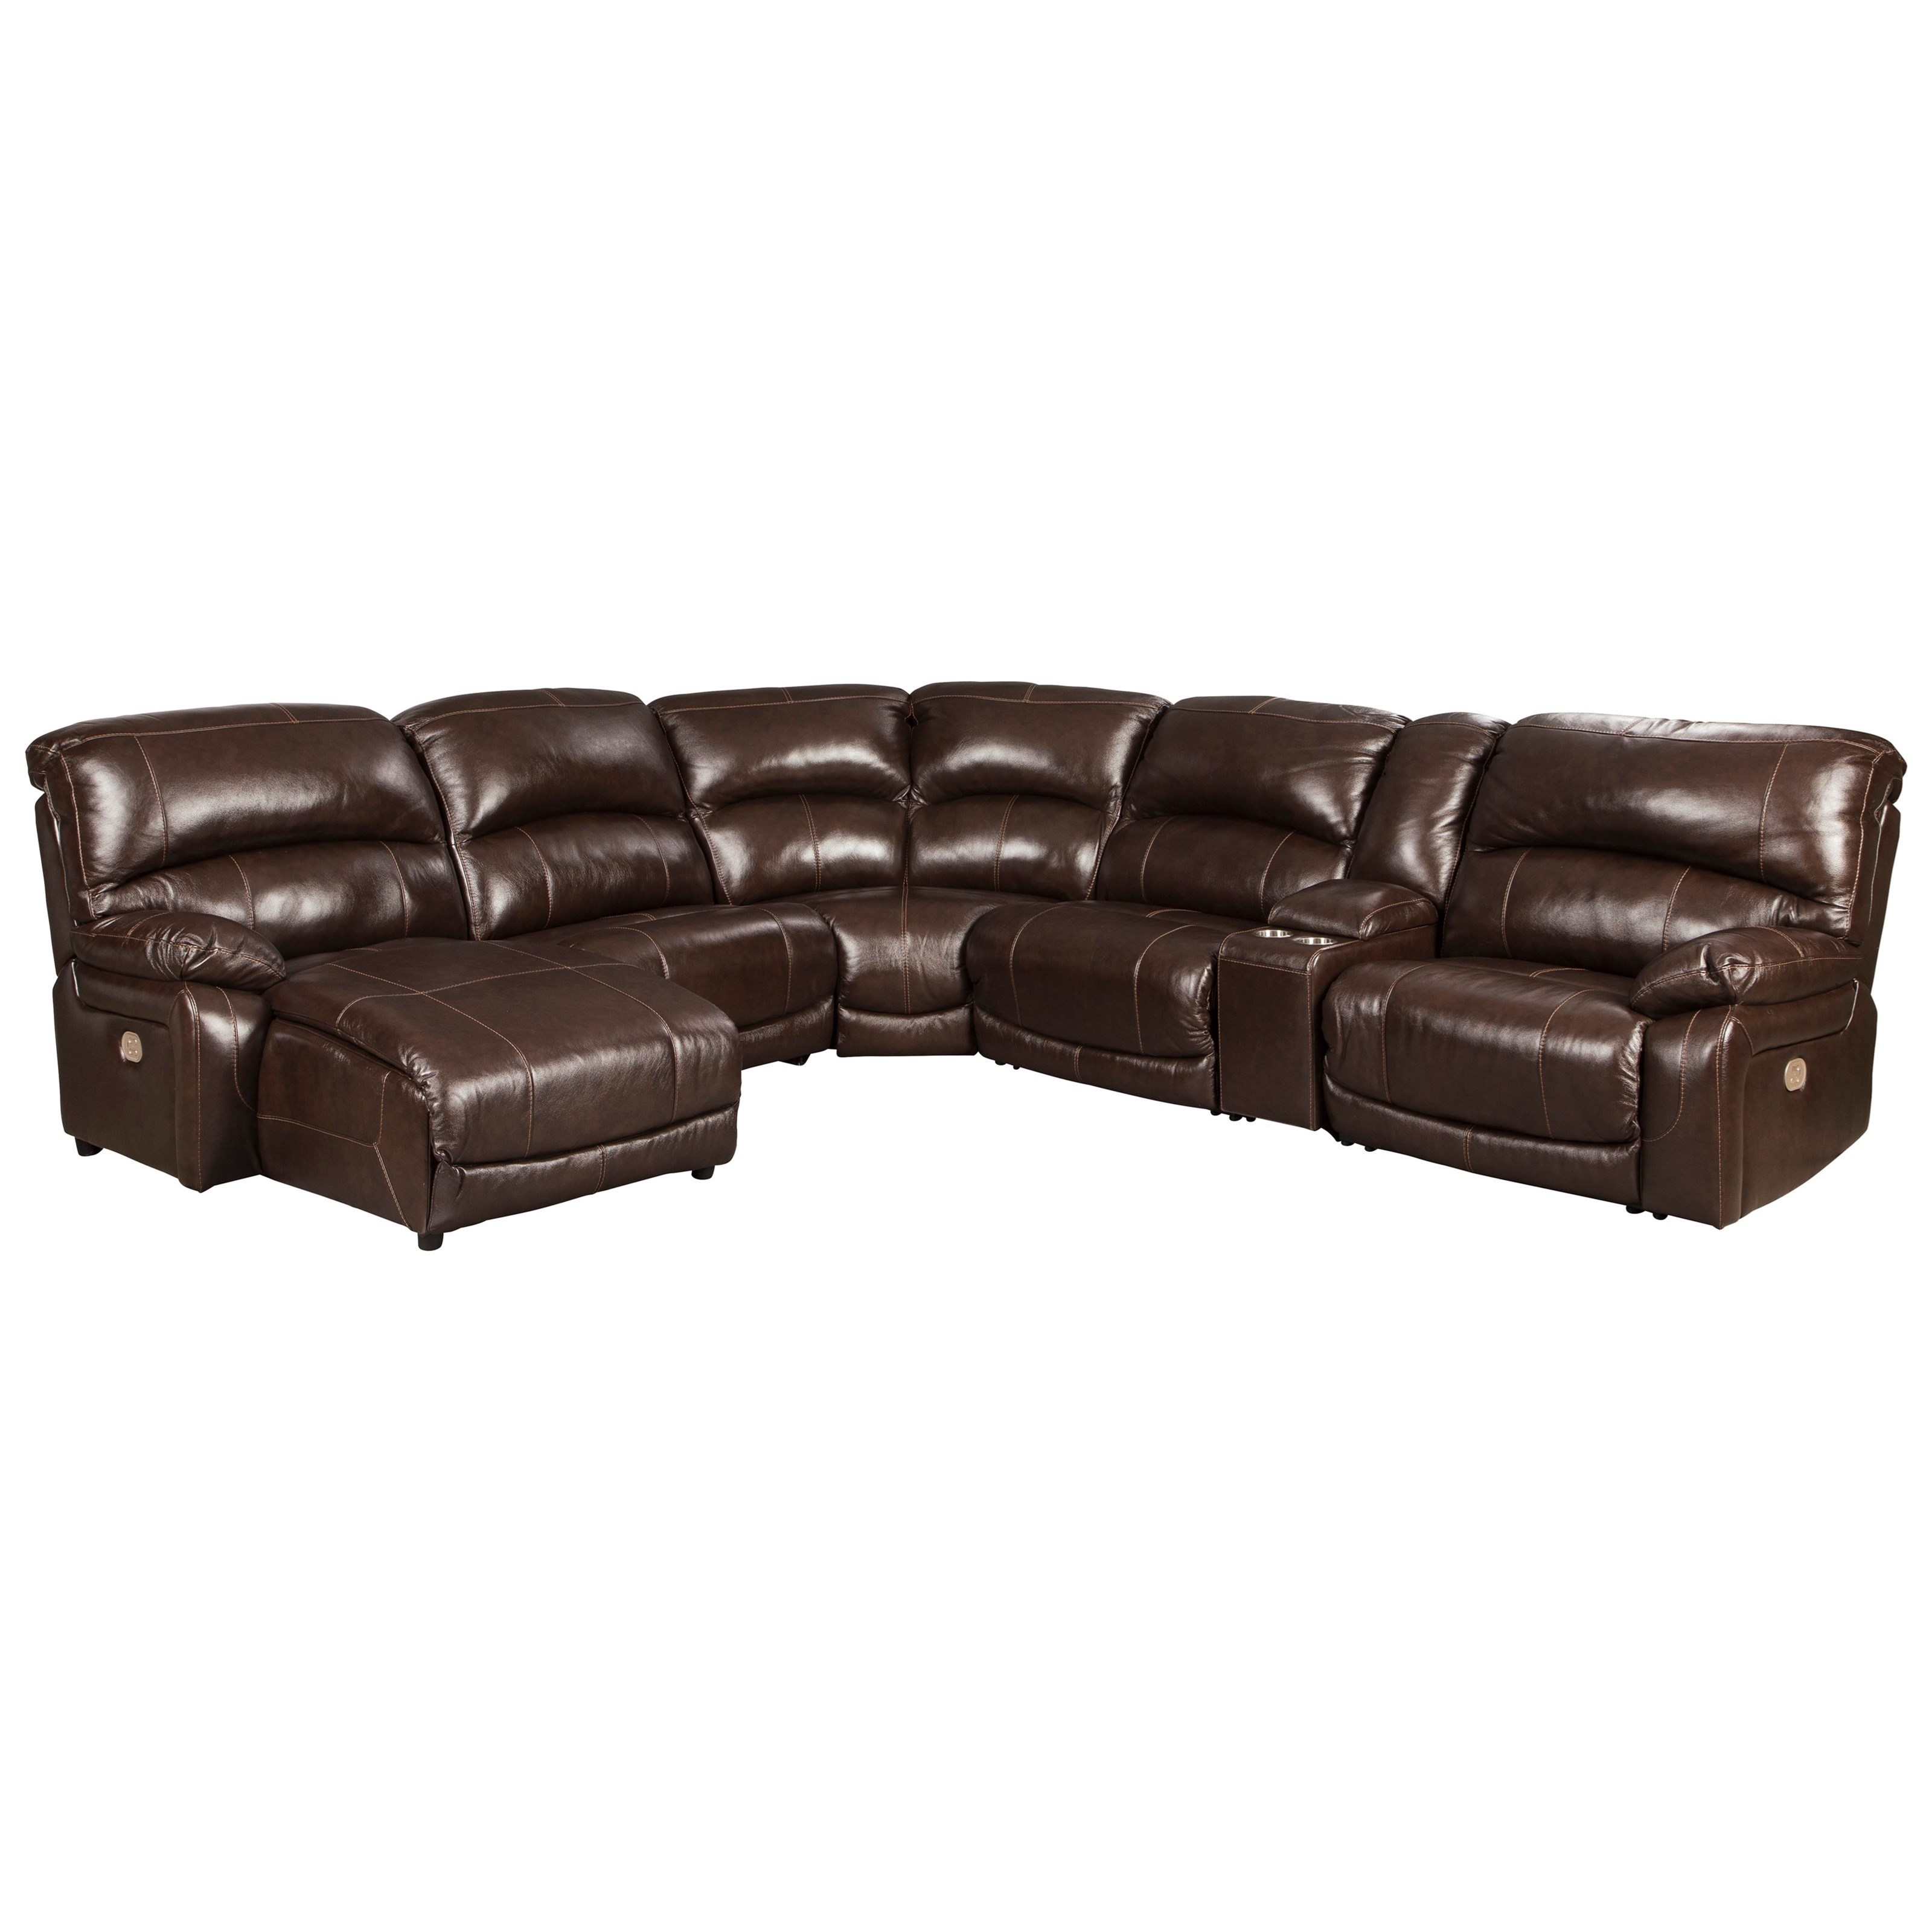 Hallstrung 5-Piece Reclining Sectional with Chaise by Ashley (Signature Design) at Johnny Janosik